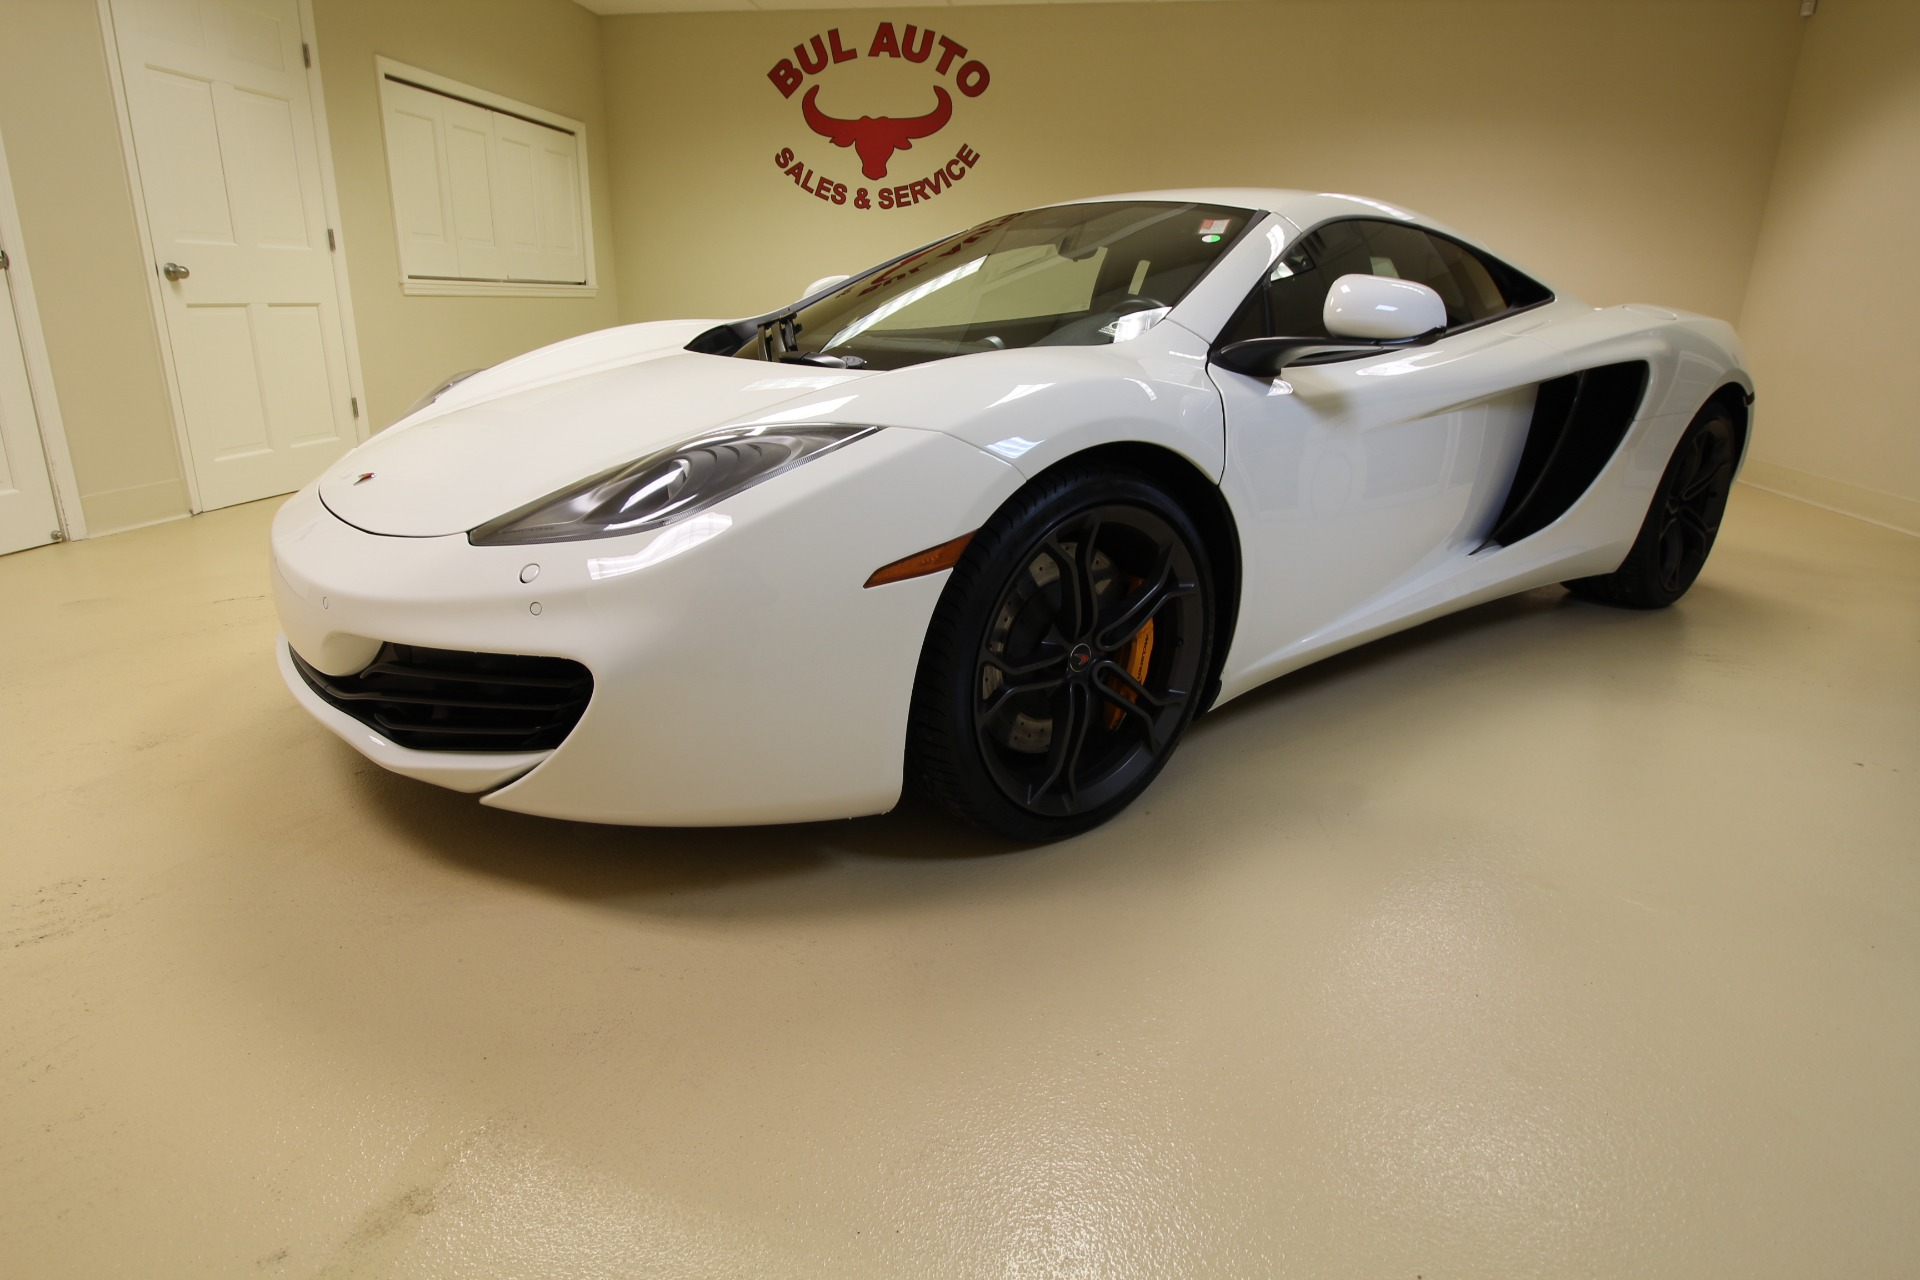 2012 mclaren mp4 12c base stock 18011 for sale near albany ny rh bulautosales com 2012 McLaren 12C New 2012 McLaren